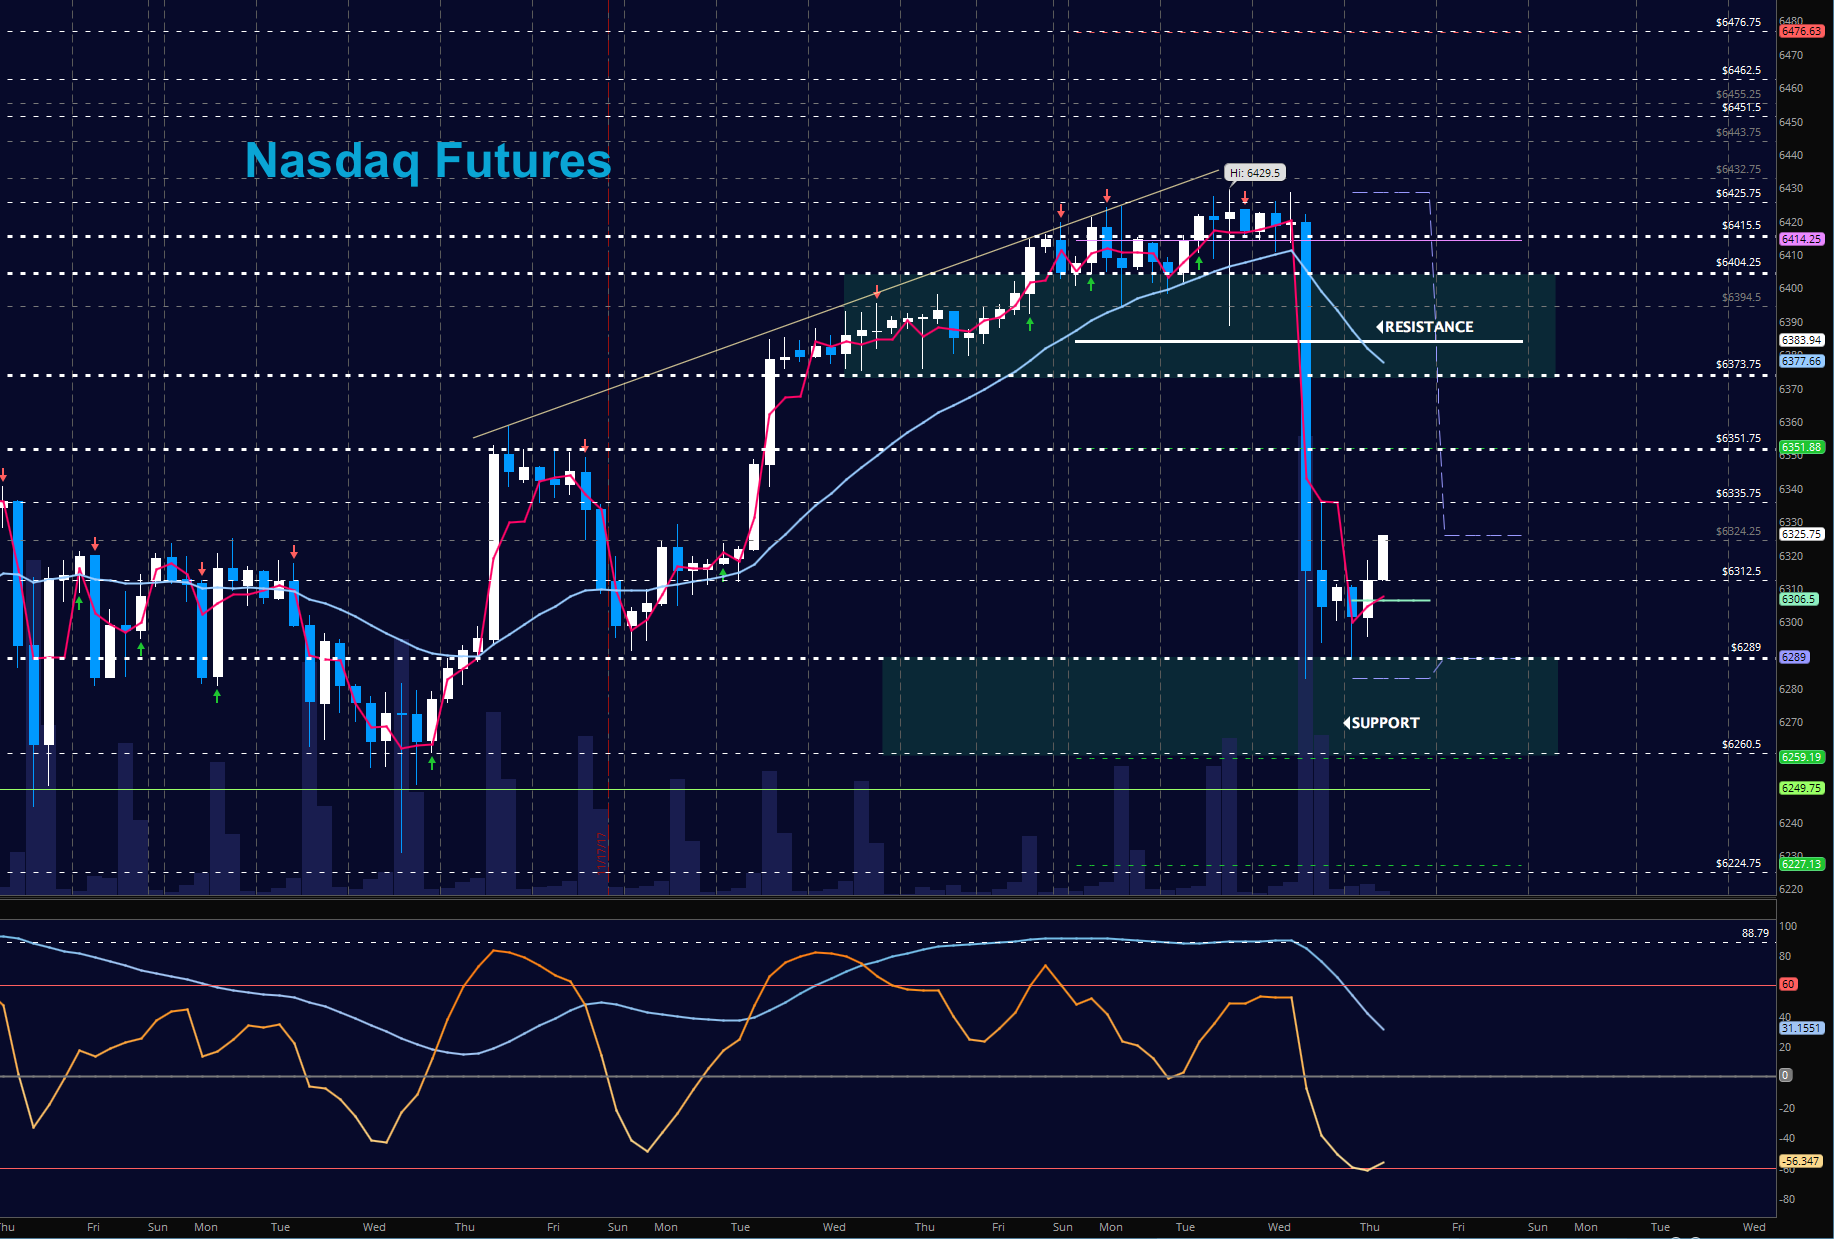 nasdaq futures trading chart_news_update_november 30_investing_markets